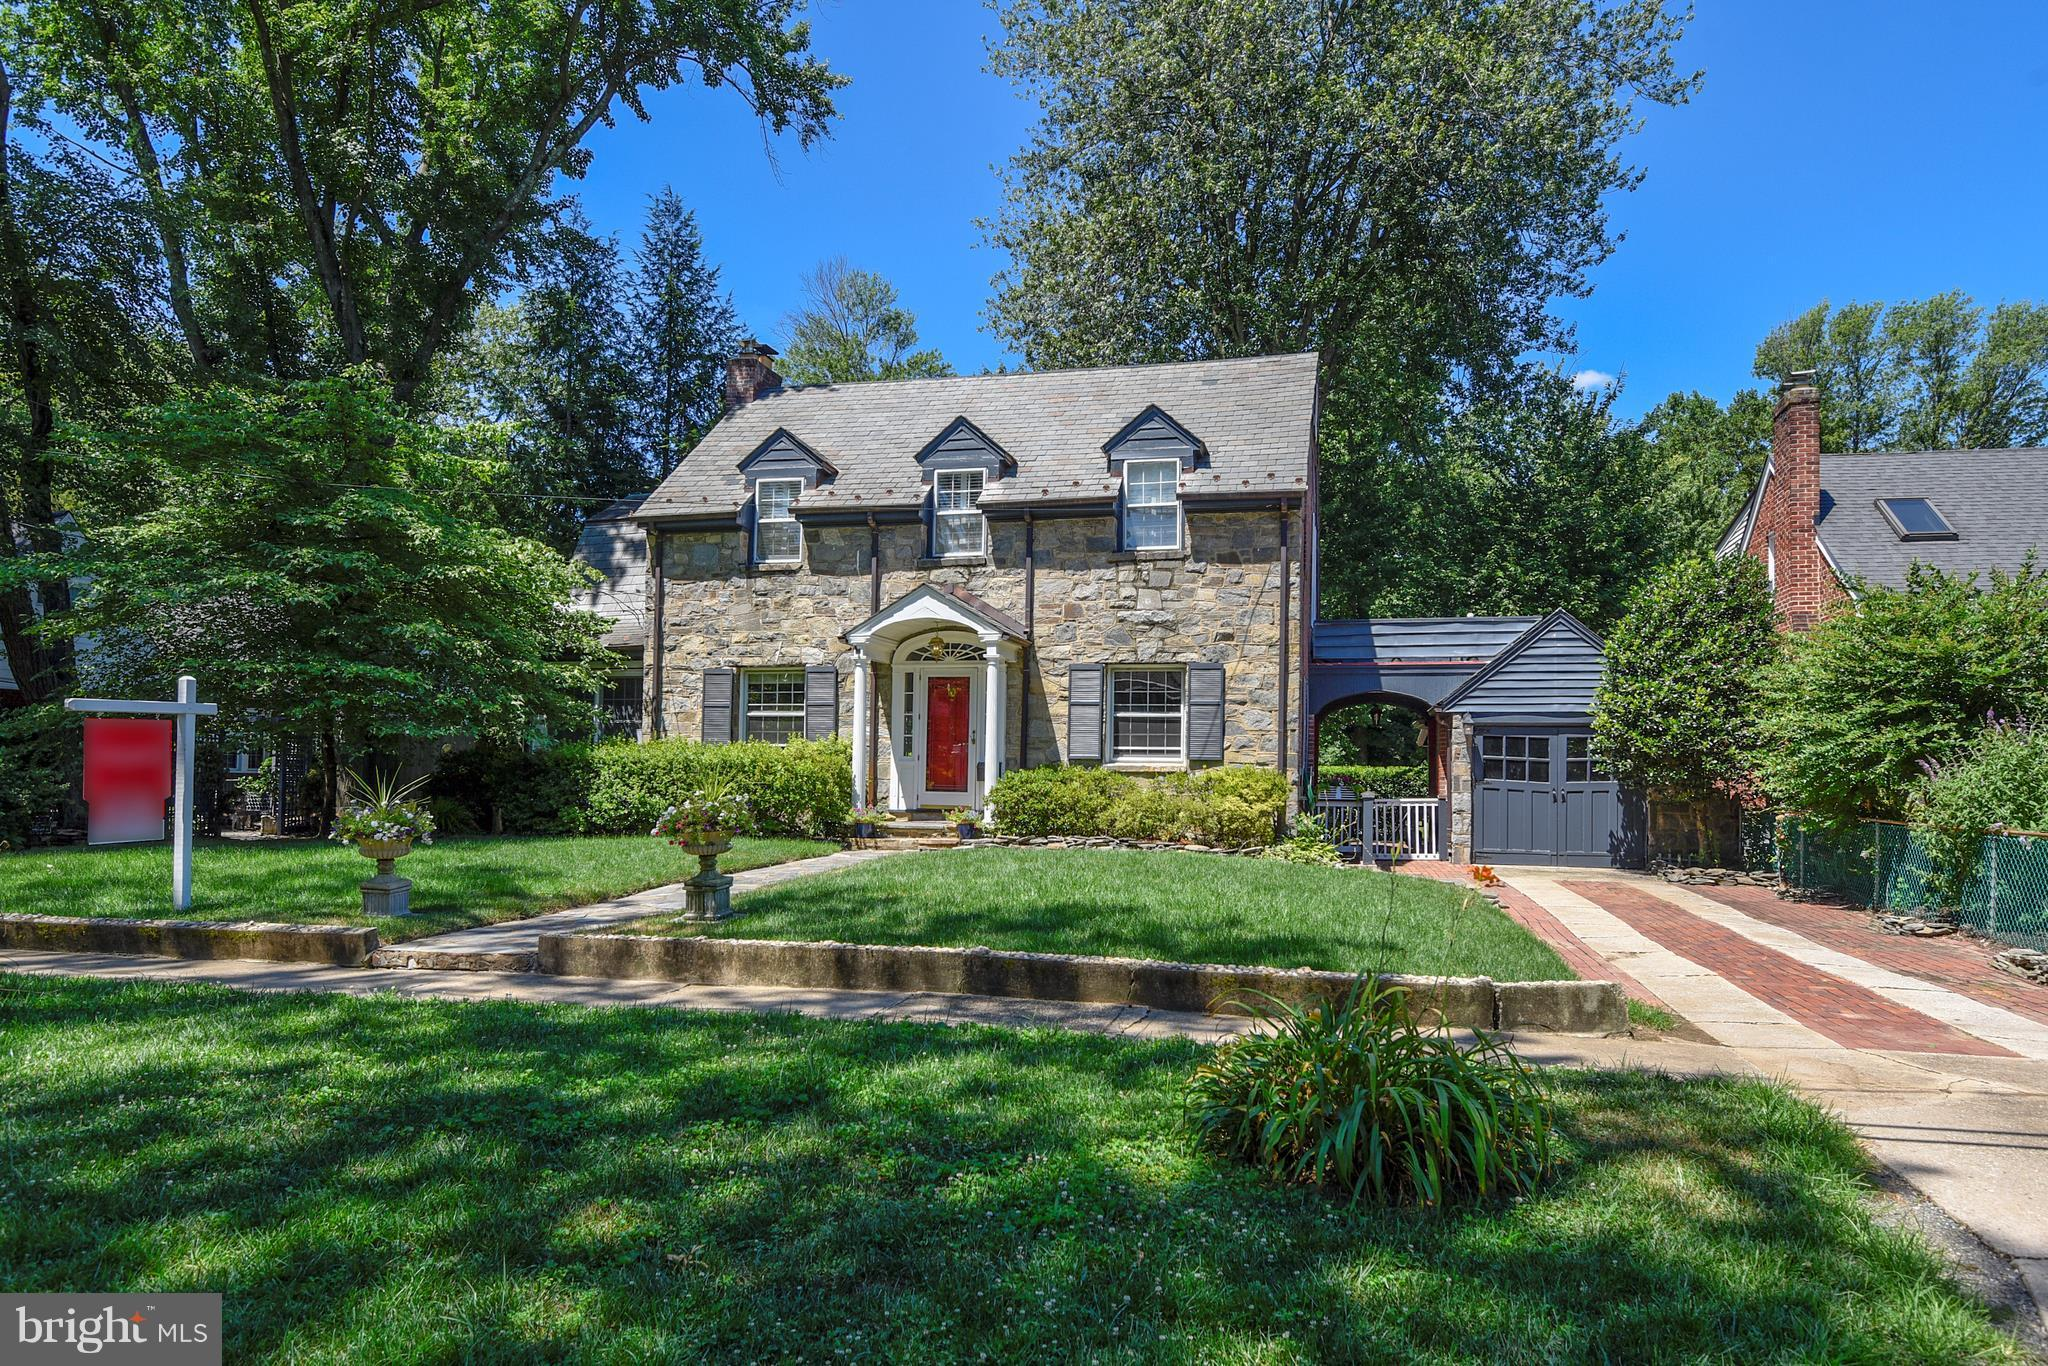 Assumable 4.375 $630K FHA loan-22 years remaining! See online docs.    Classic Stone, Brick, Slate Colonial gracious floor plan, beautiful appointments, fabulous backyard - a rare beauty!  Large sun filled rooms, hardwoods and private terrace off Master.  Close in New Alexandria has easy access to Old Town, GW Parkway, MV Bike Path, Belle Haven Marina, Belle View Shopping Center,  fabulous 11Y Bus